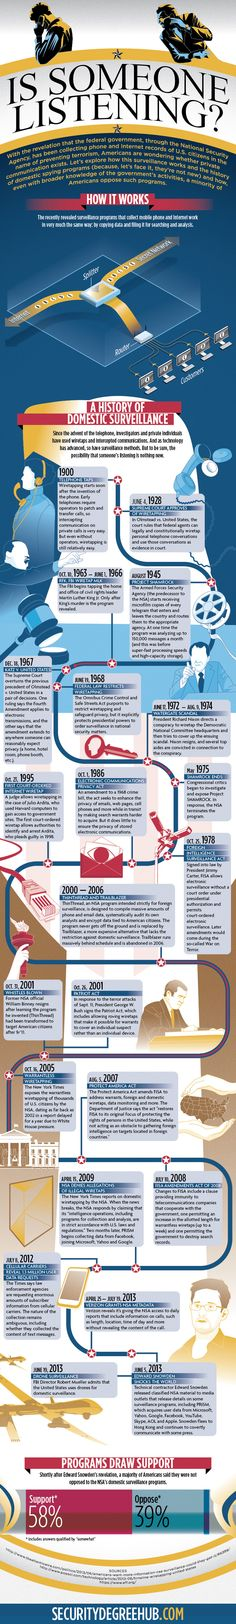 The Government has been Listening for a While [Infographic] - http://www.alleywatch.com/2013/07/the-government-has-been-listening-for-a-while-infographic/ #privacy #surveillance